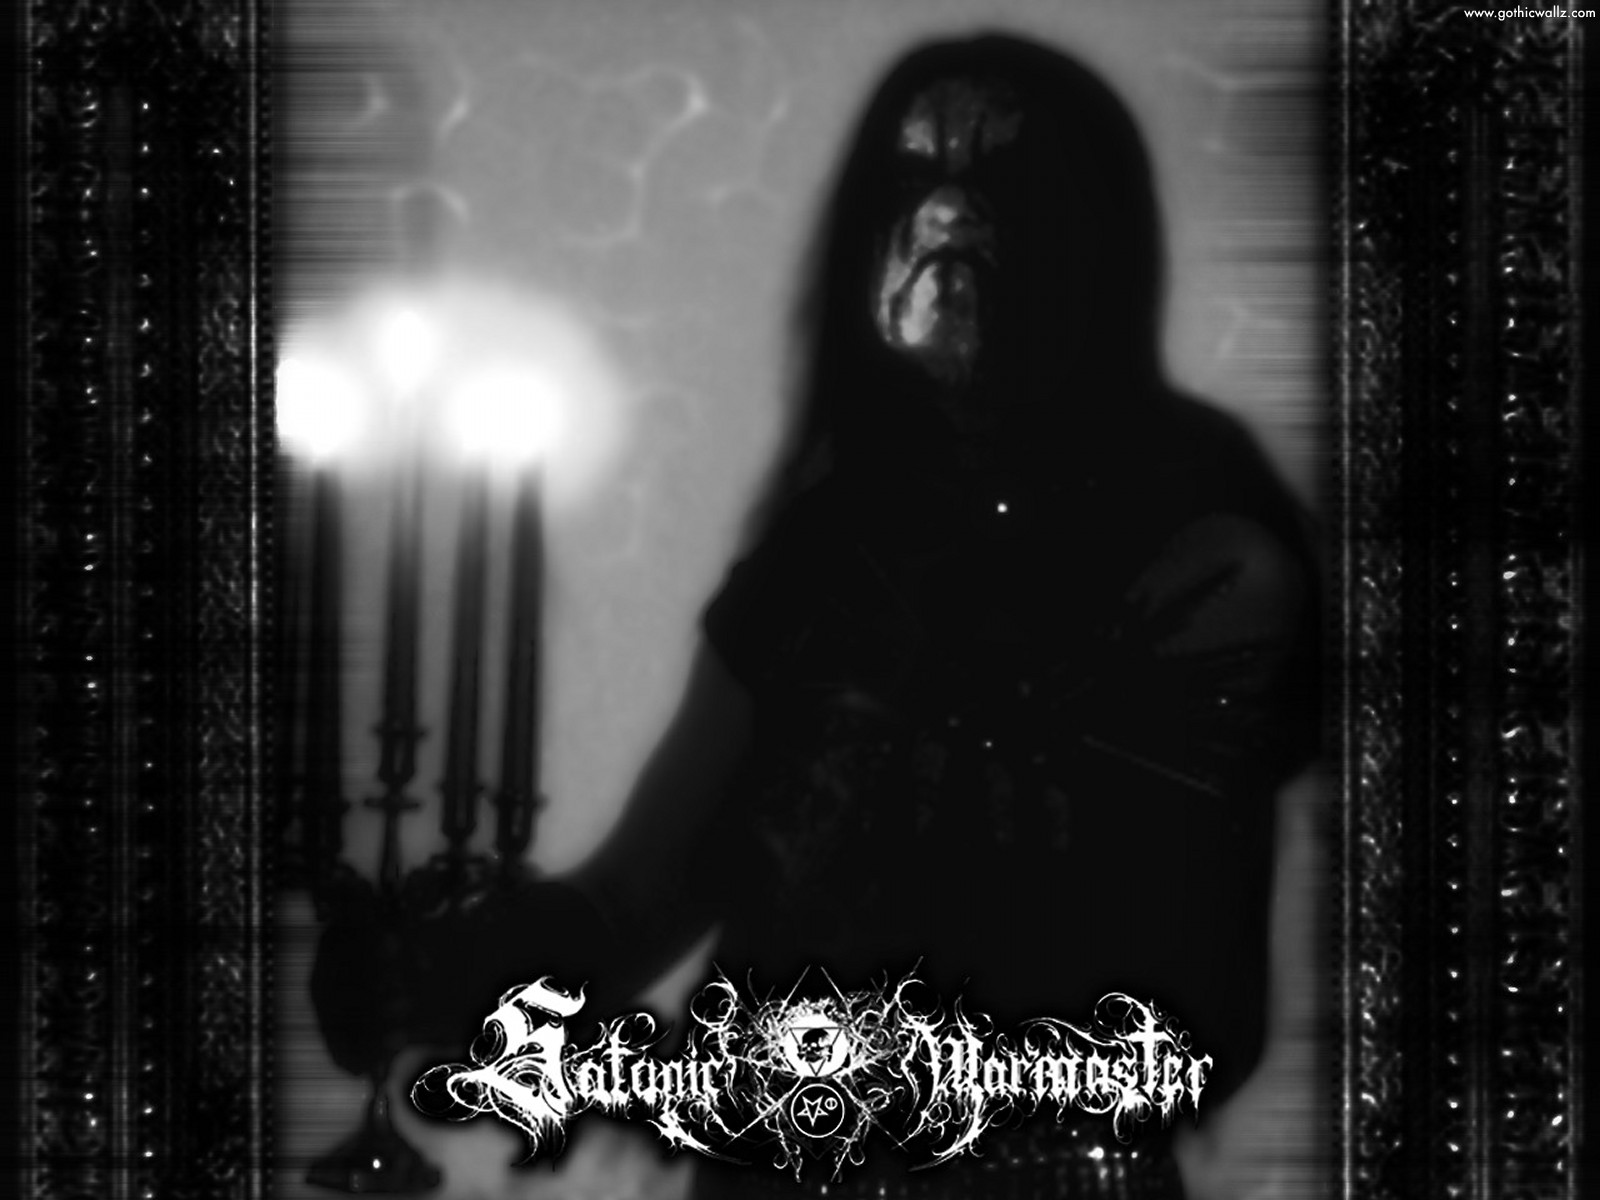 Satanic Warmaster | Gothic Wallpaper Download